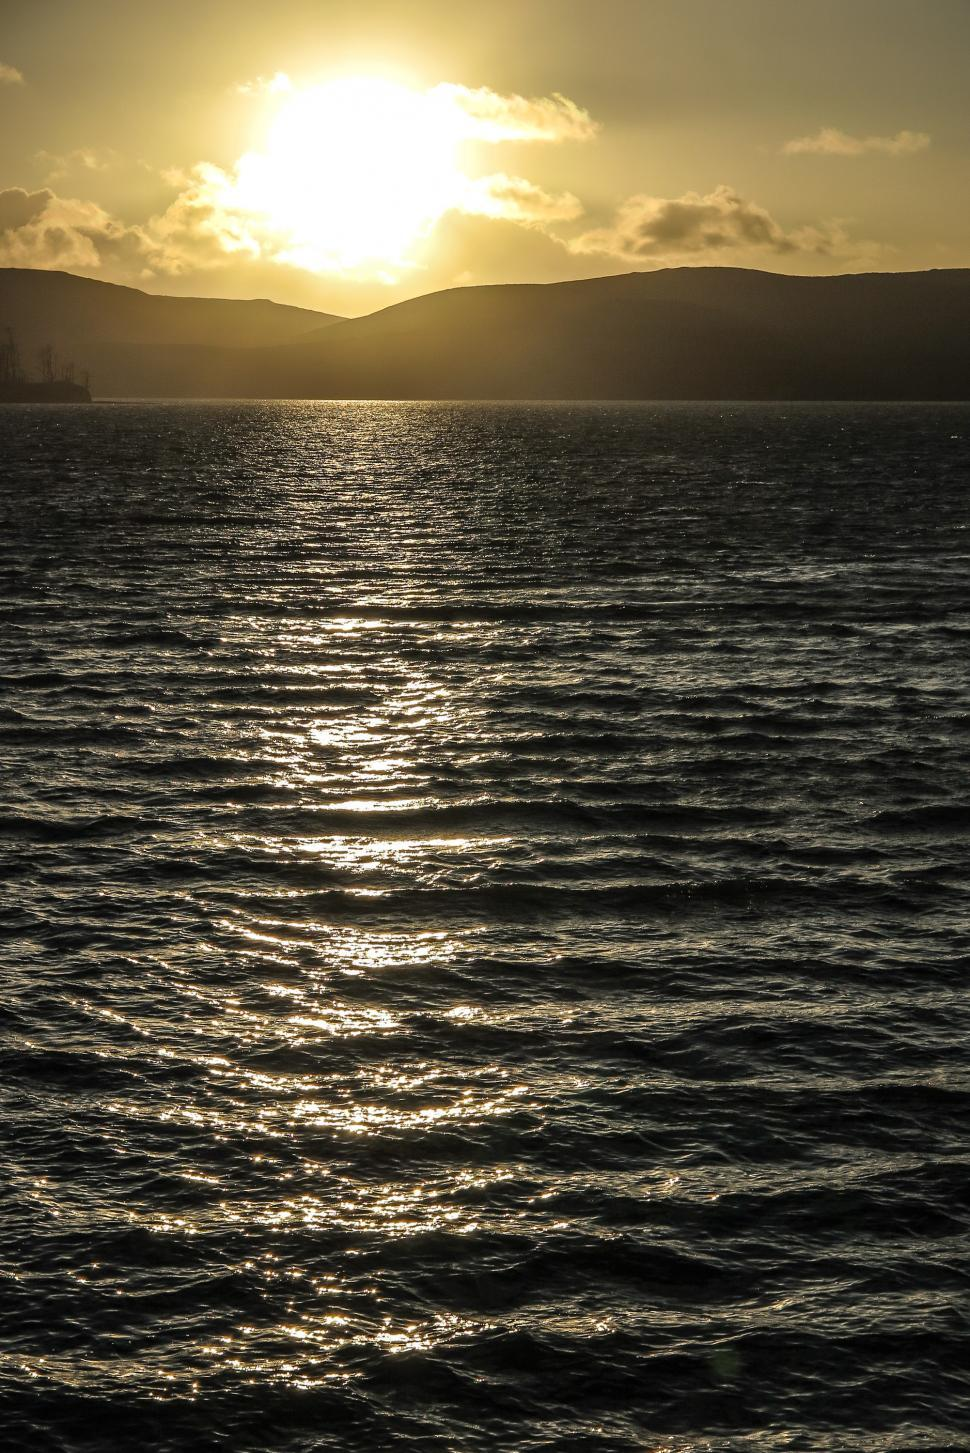 Download Free Stock Photo of Looking into the sunset